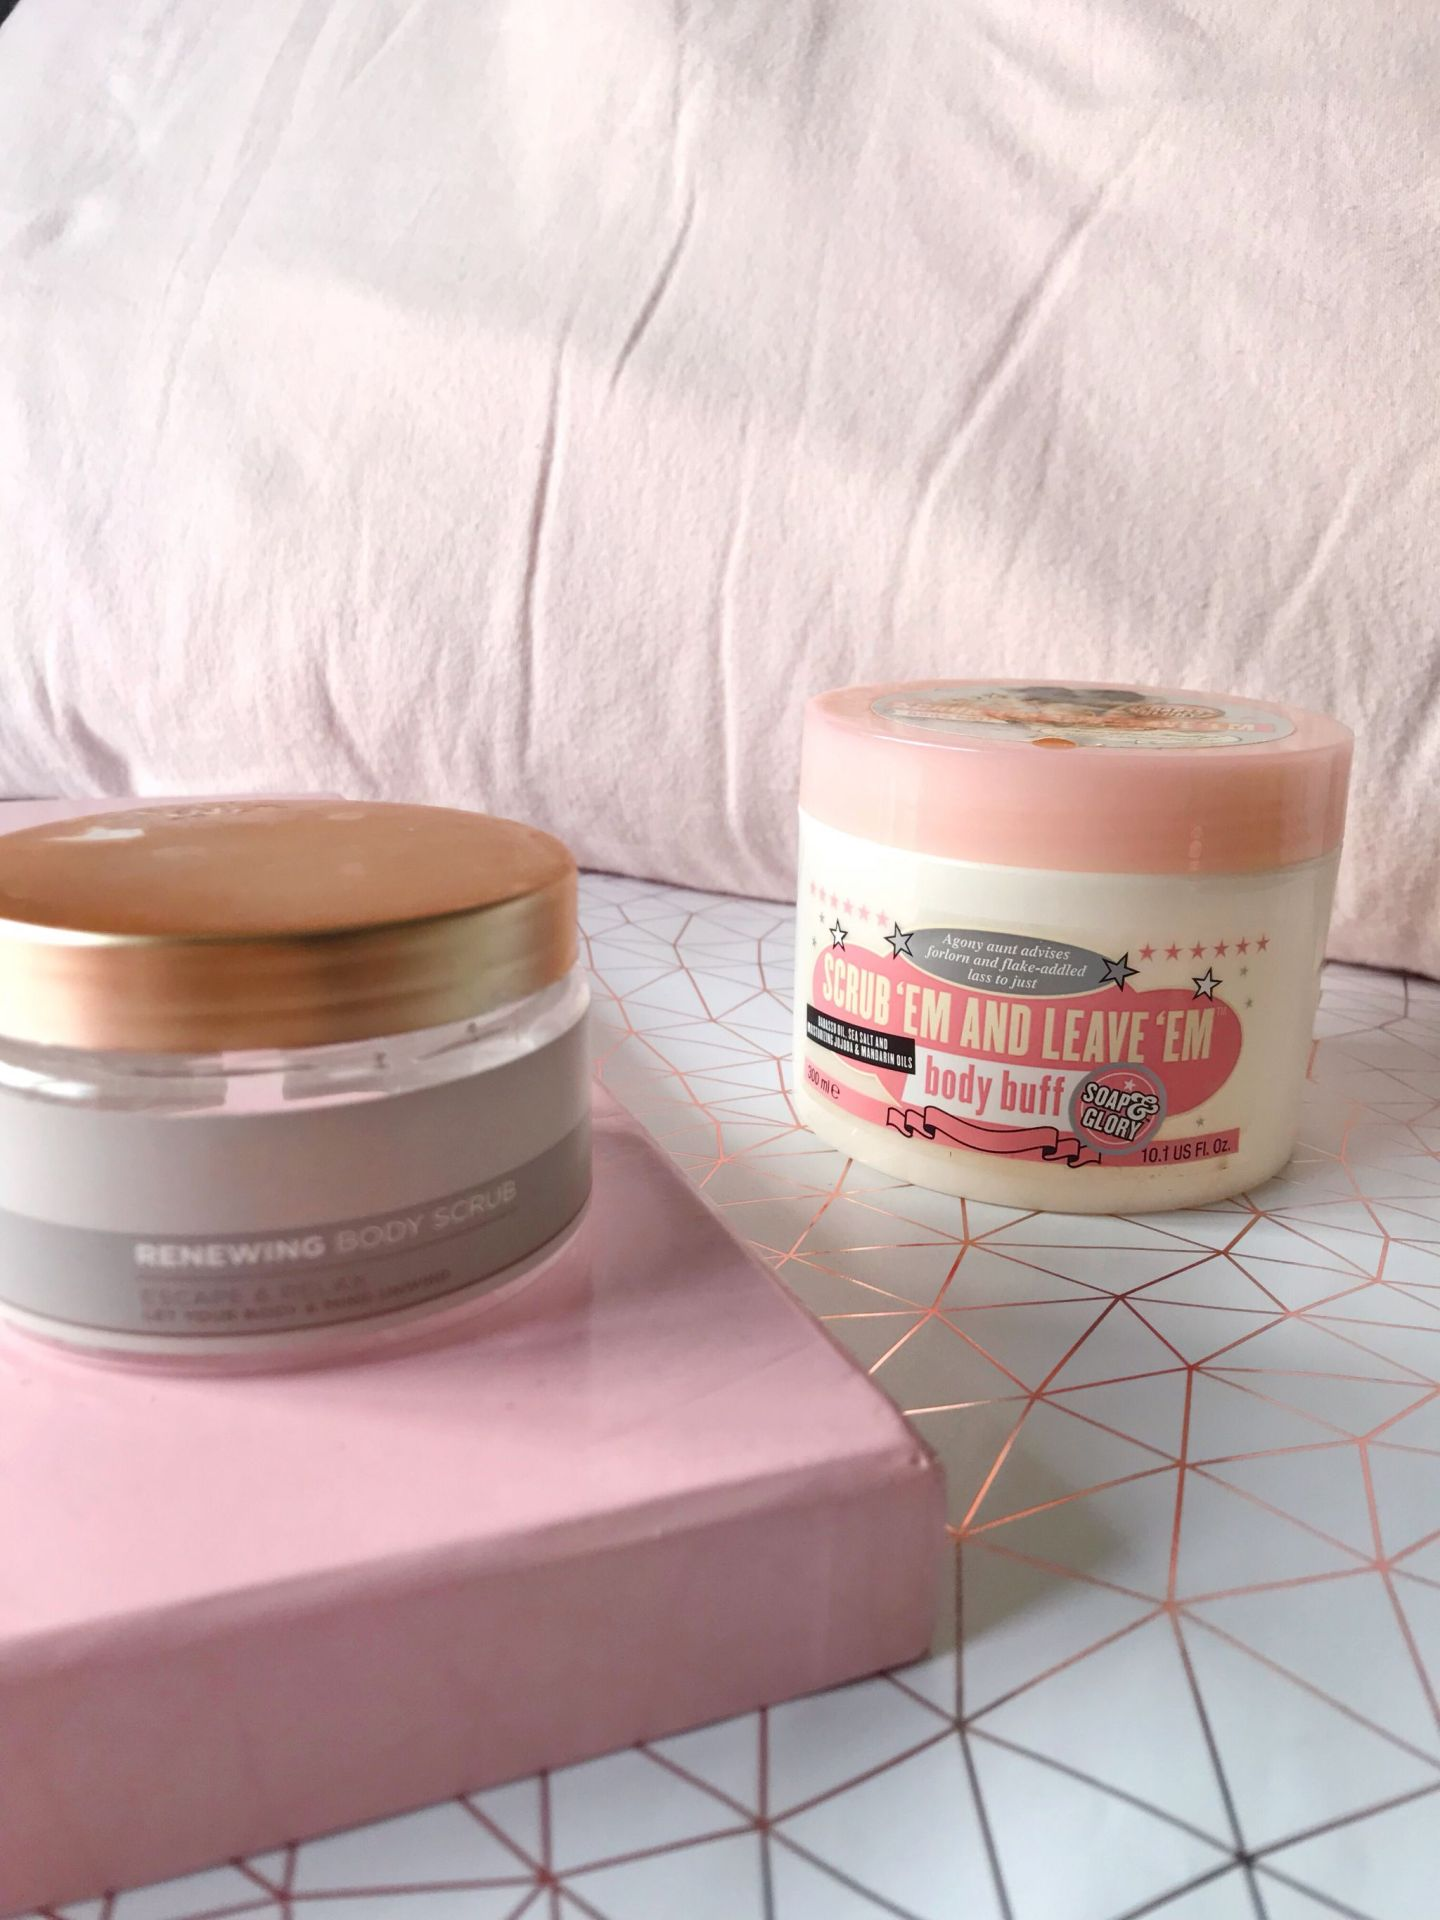 Superdrug scrub and Soap and Glory body buff